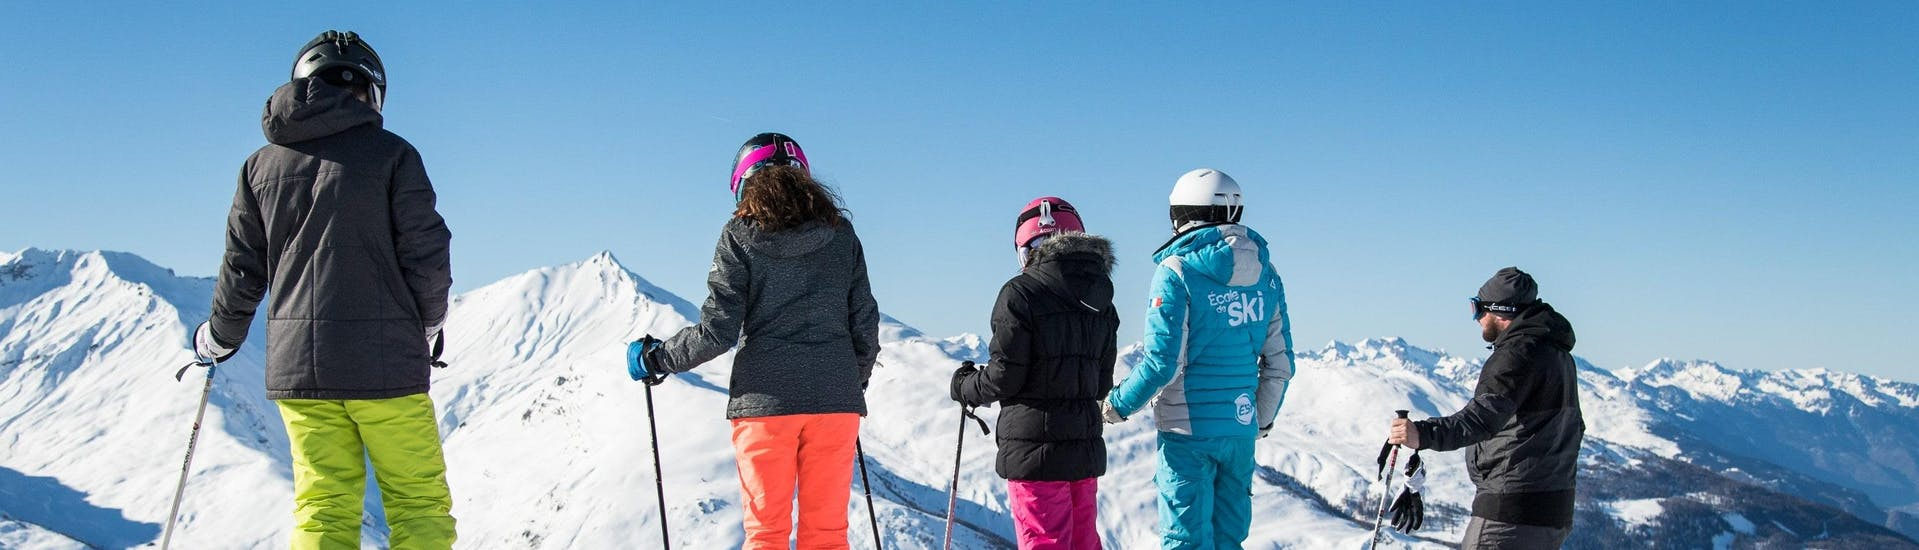 Skiers are looking at a beautiful winter landscape of snow-covered mountains during their Ski Lessons for Adults - All Levels with the ski school ESI Dévoluy.